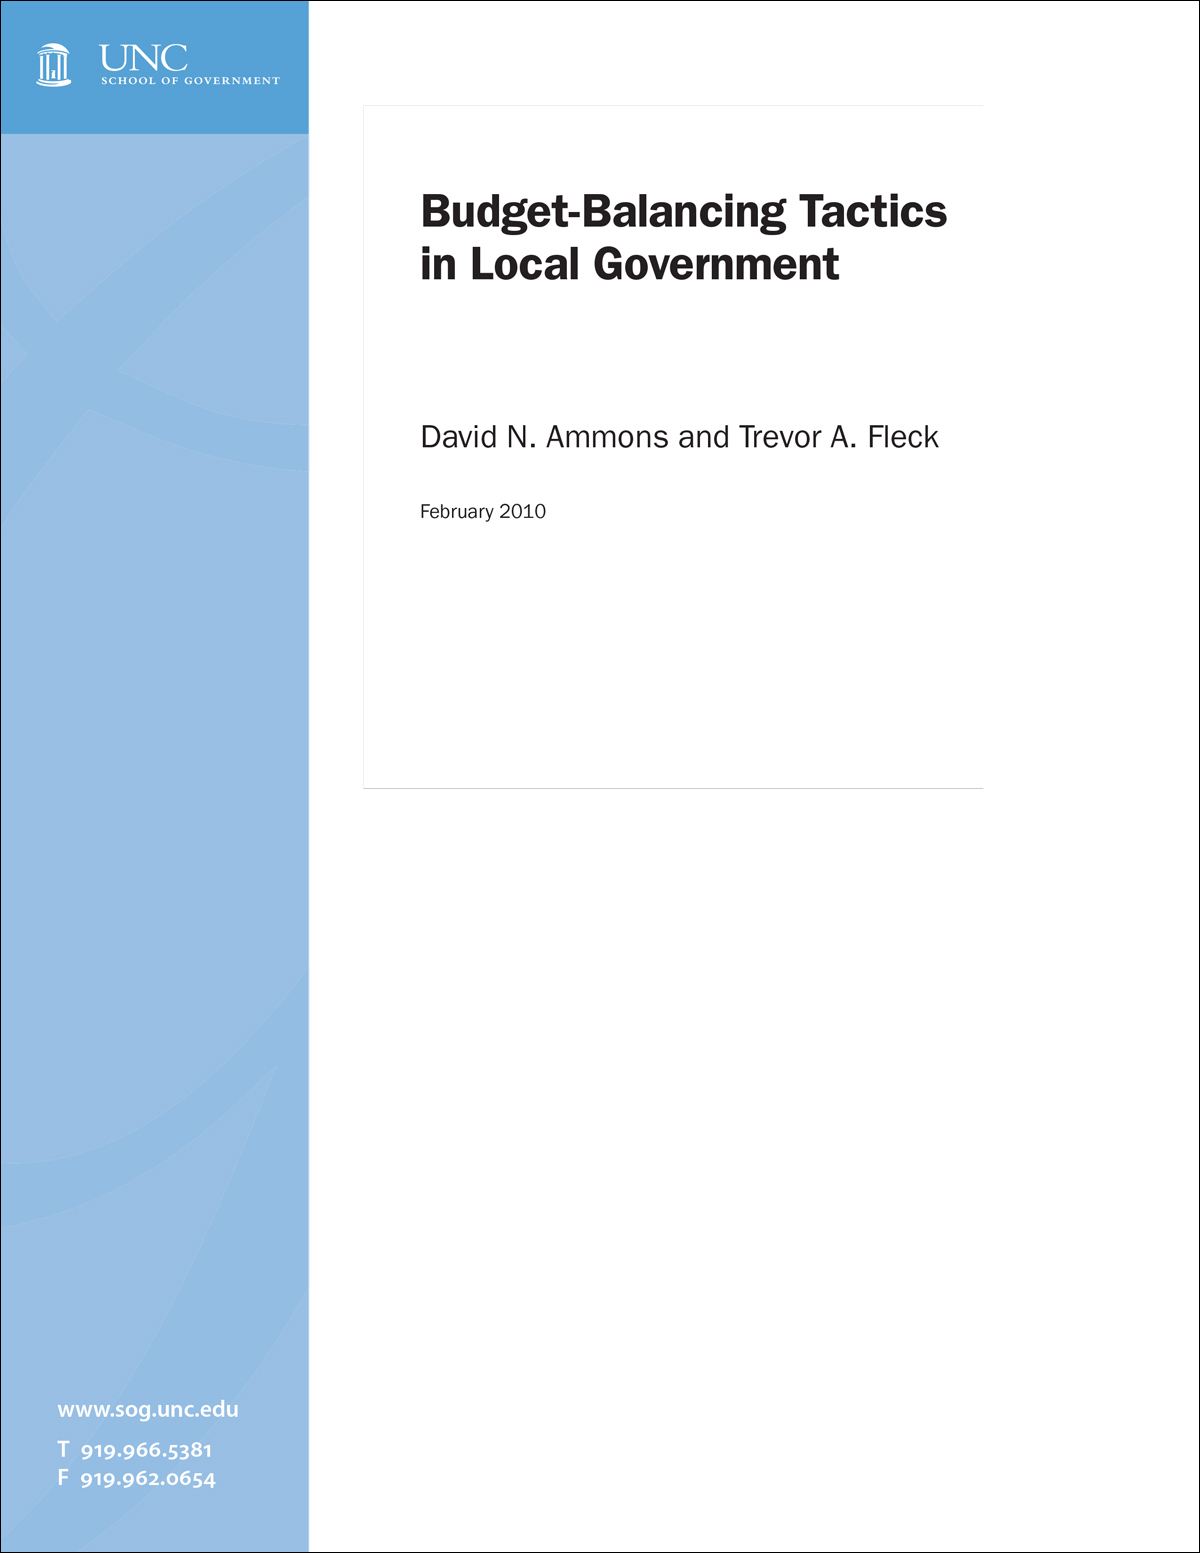 Cover image for Budget-Balancing Tactics in Local Government